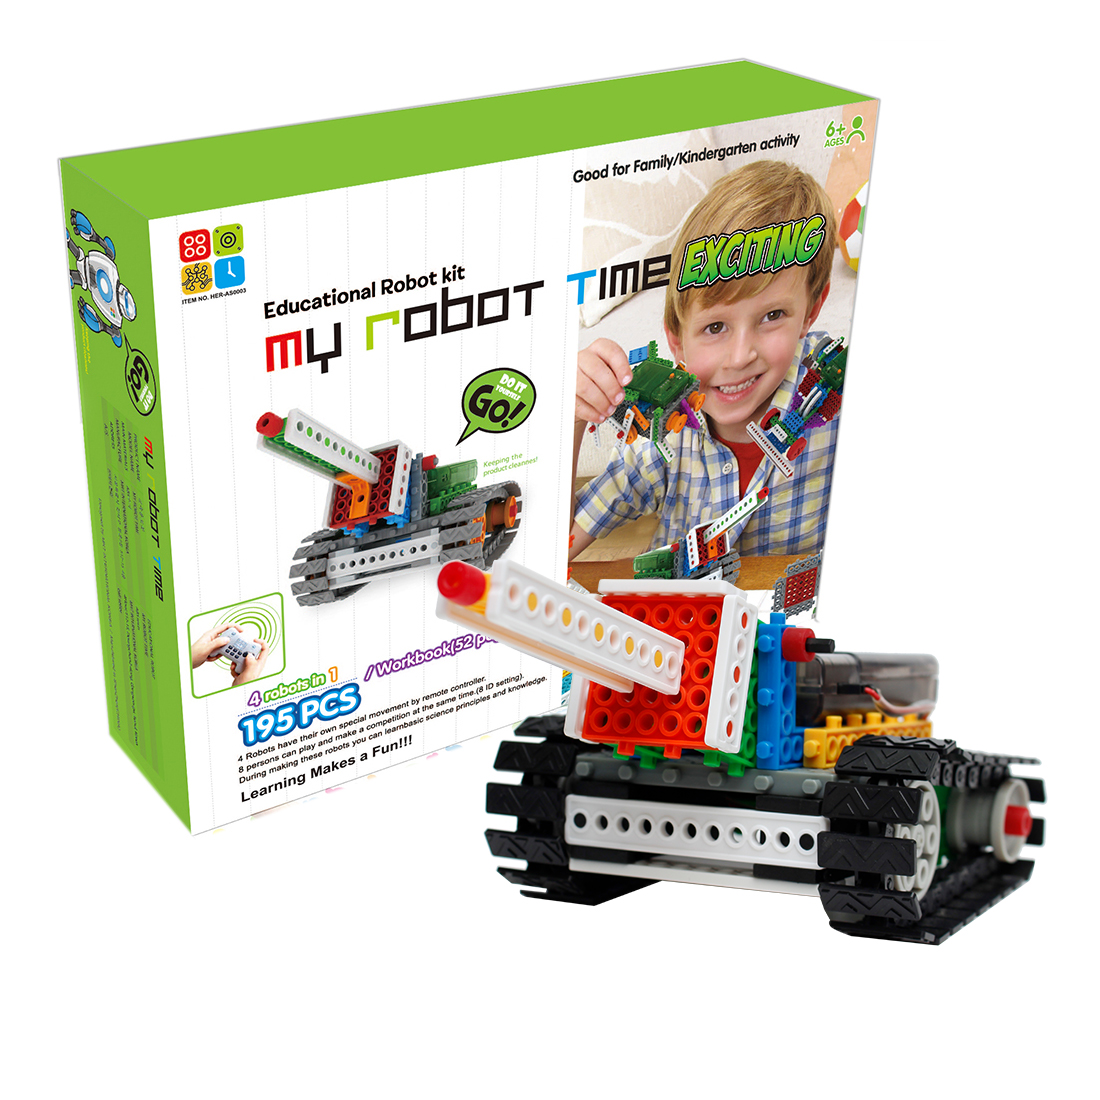 My Robot Time 4 Robots In 1 Programmable Toy Remote Control Land Robot Building Block Kit Assembly Educational Toy - 3-Exciting